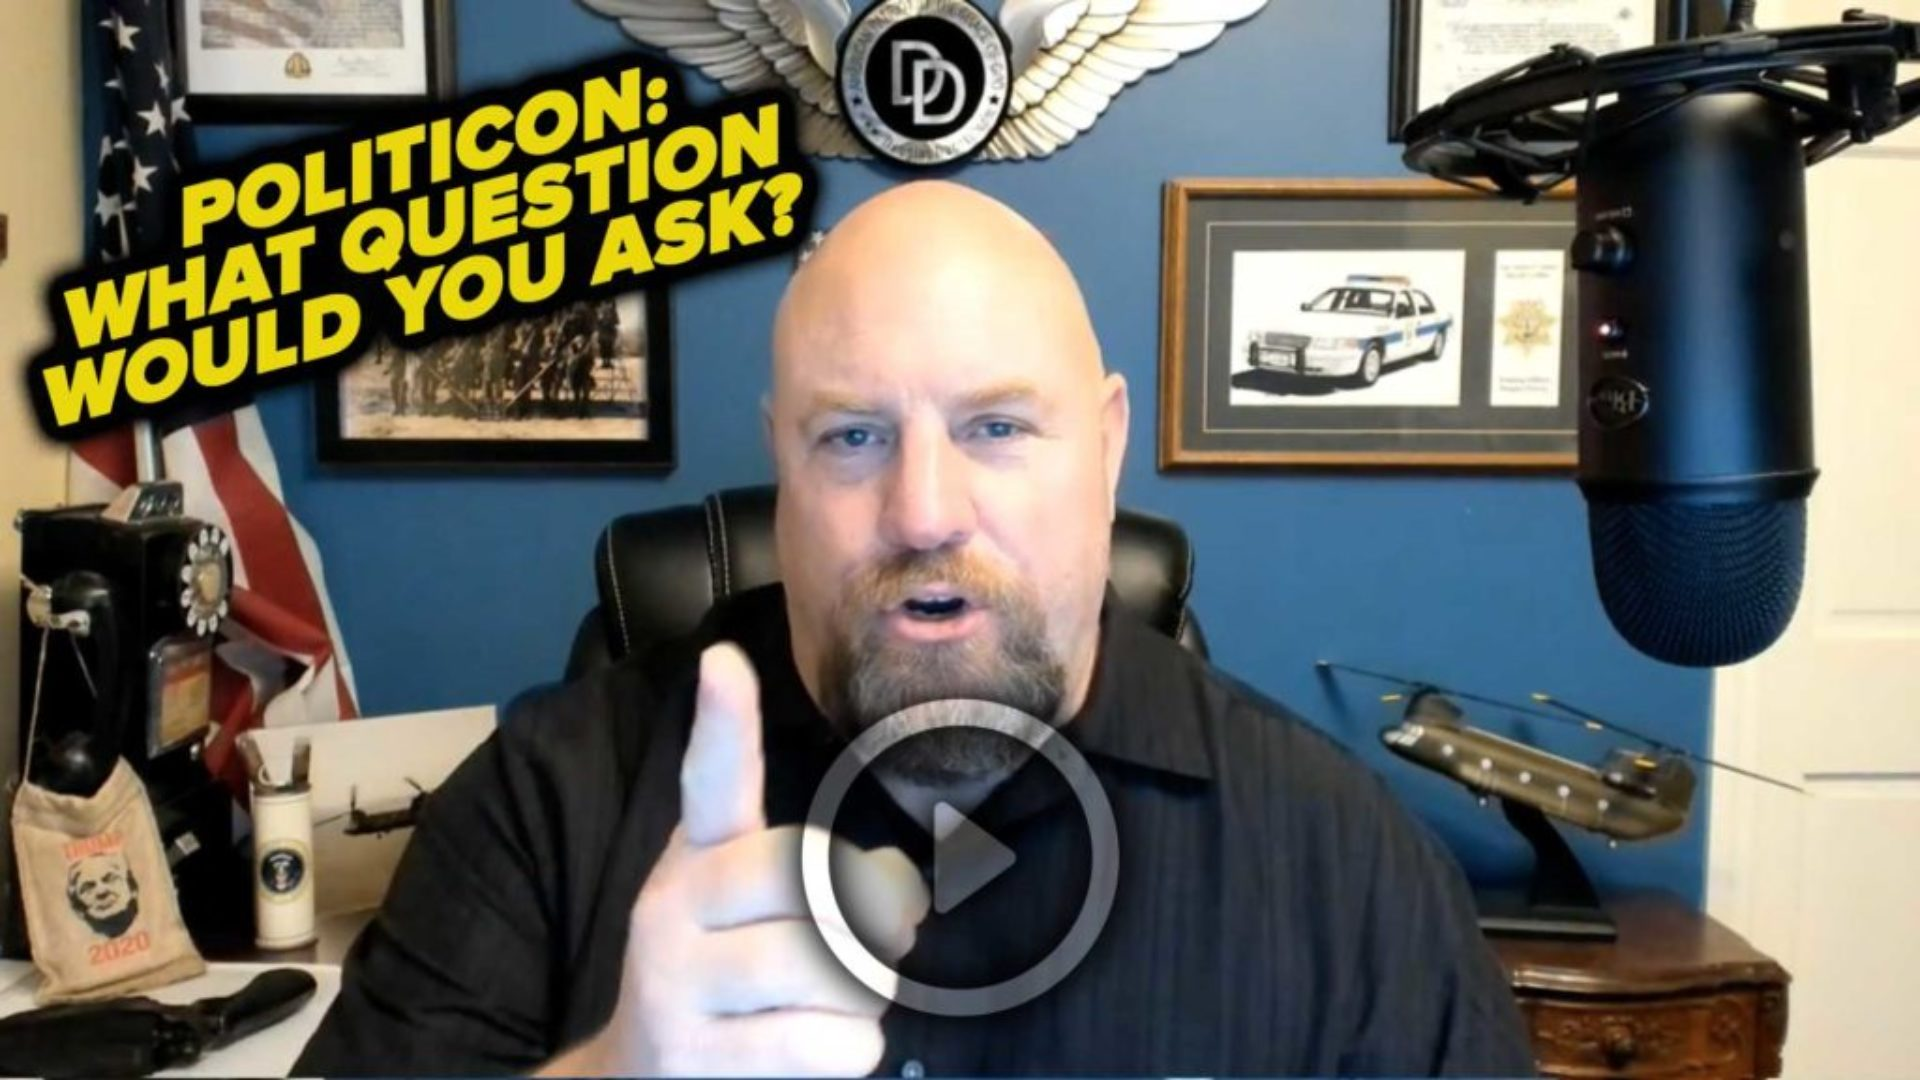 Politicon-Submit-Your-Questions-Now-2